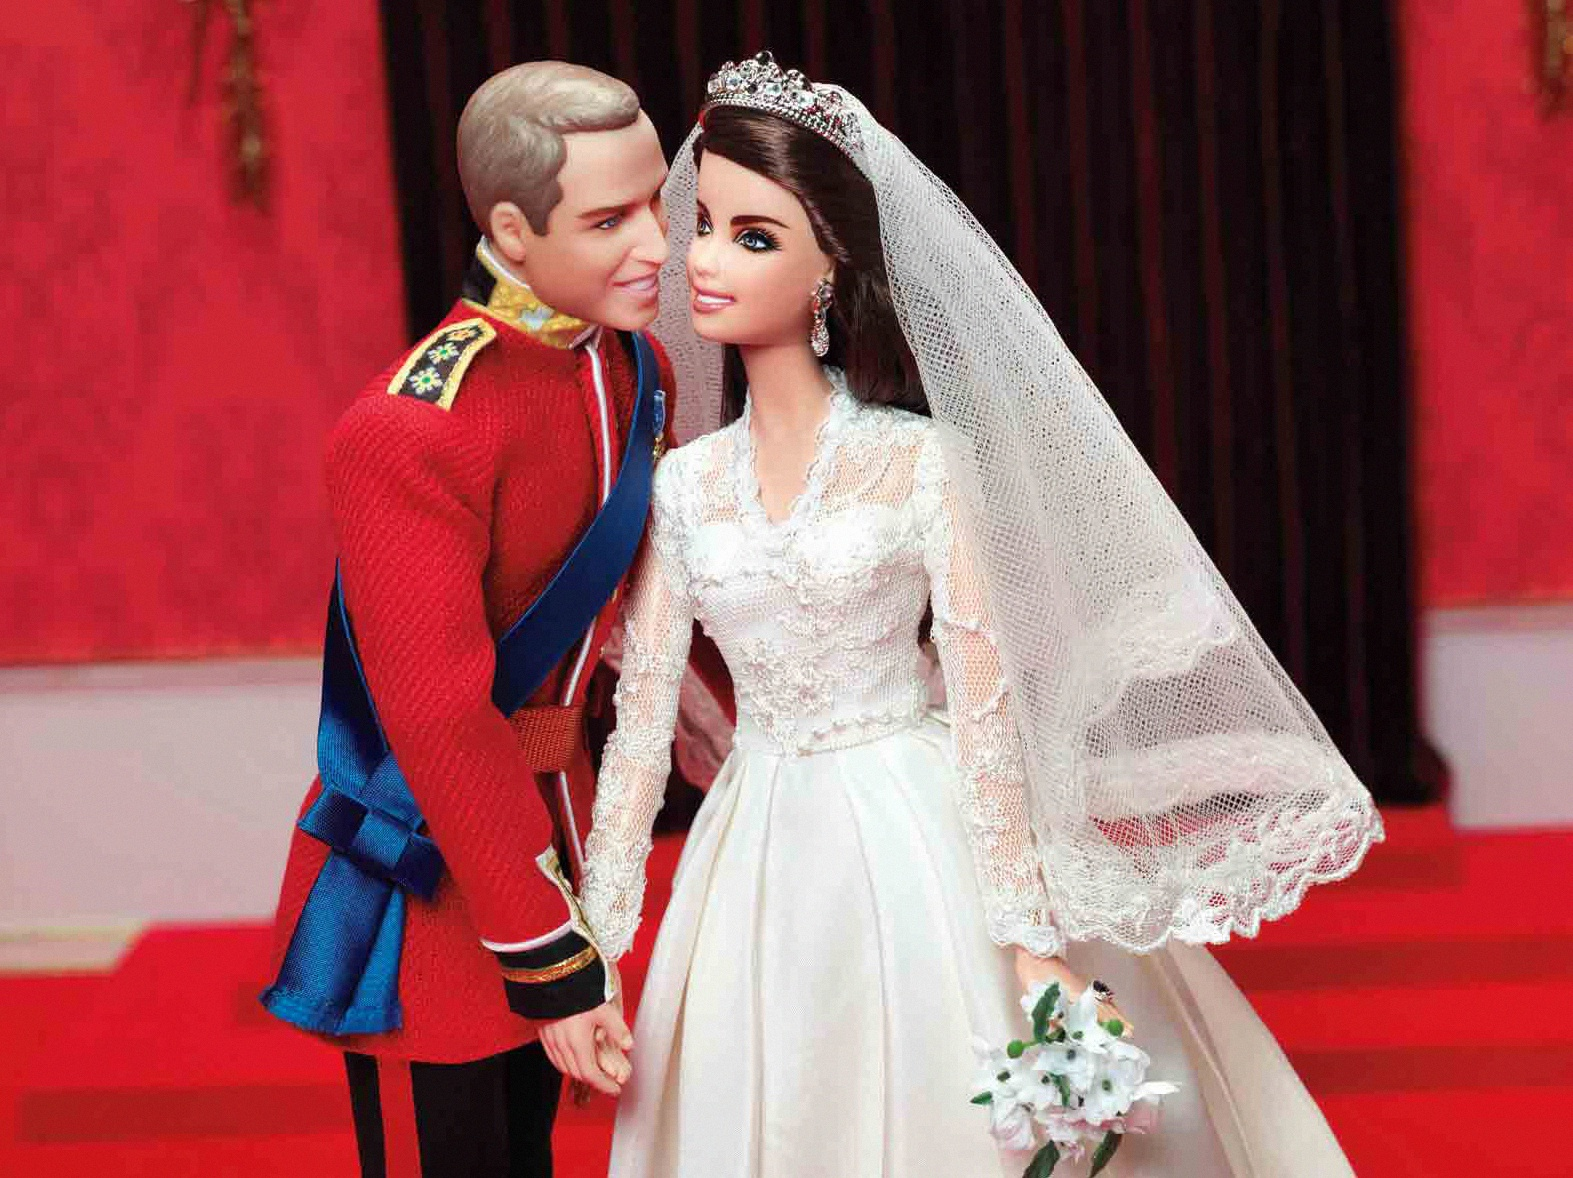 william et kate poupées mattel